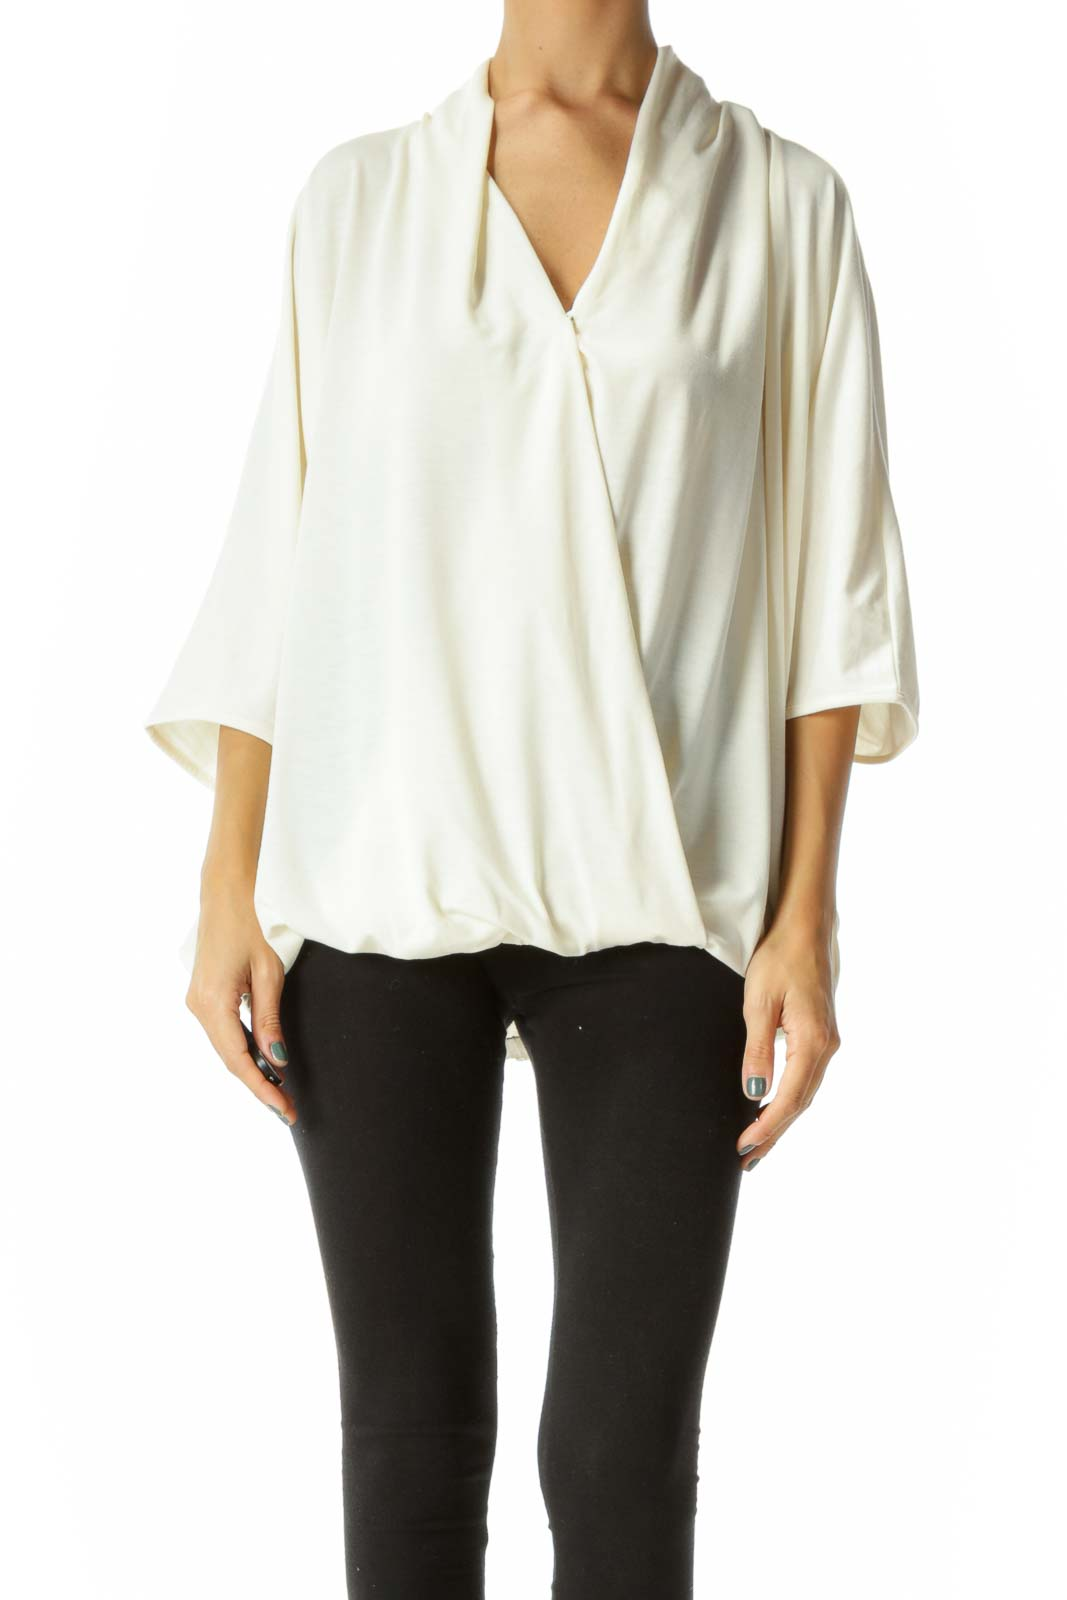 Cream V-Neck Snap Button Closure Bat Sleeves Elastic Waist Blouse